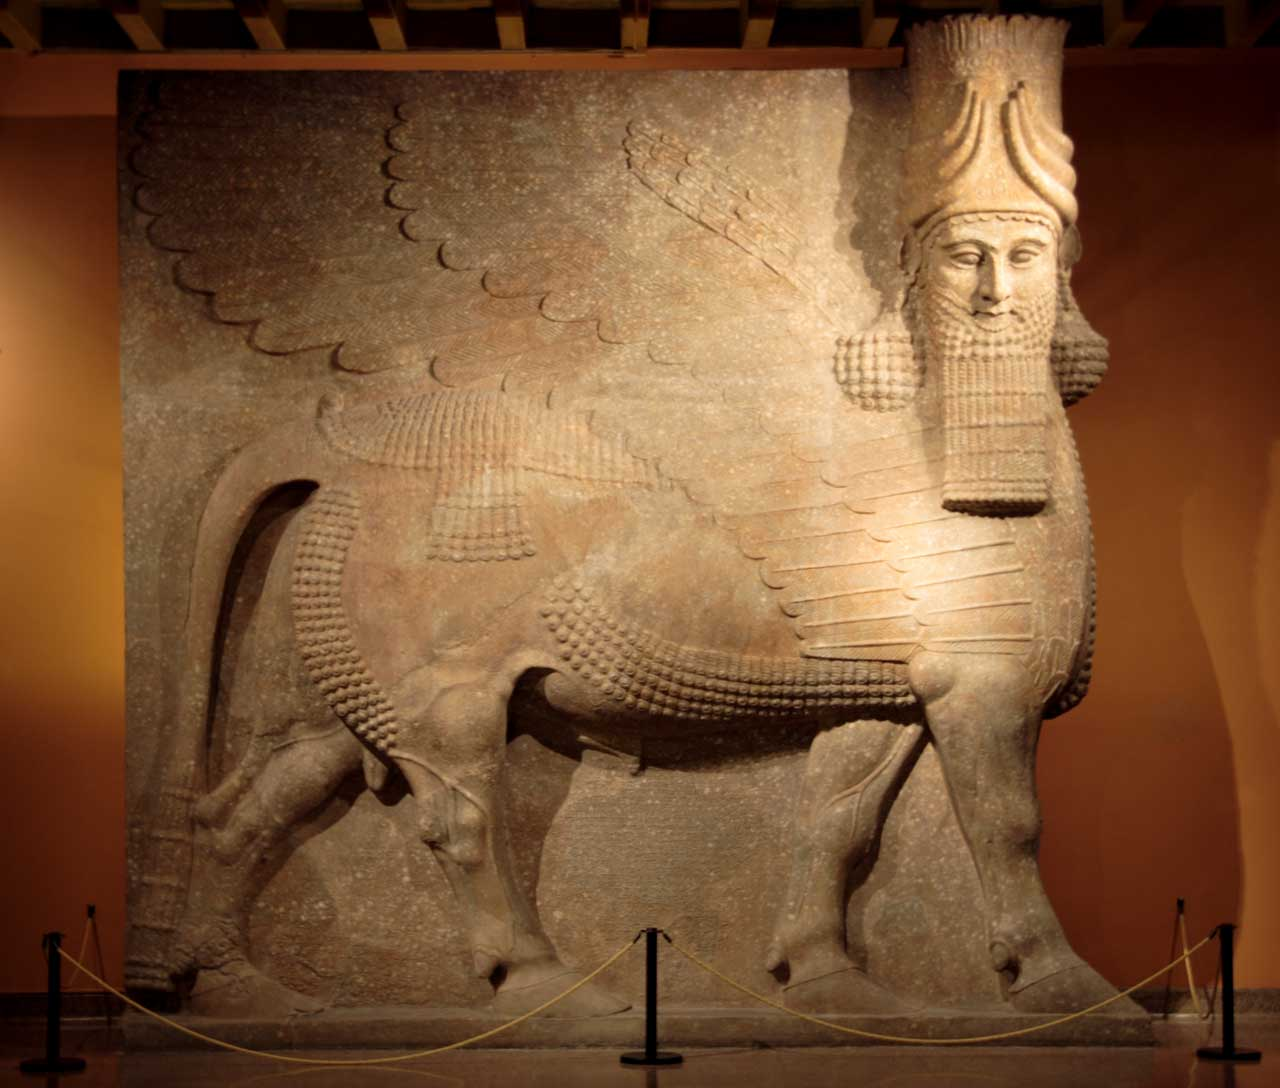 Lamassu from the court of Sargon II of Assyria